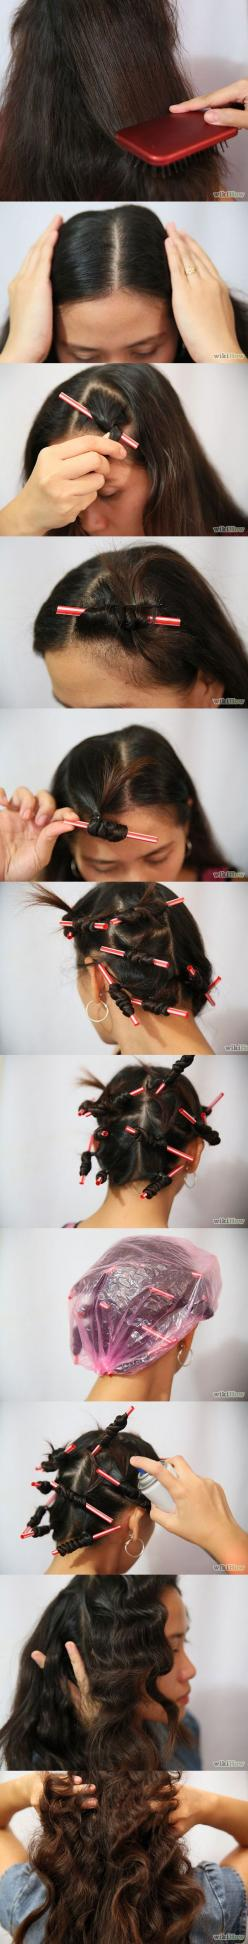 6 Easy Ways to Curl Your Hair with Drinking Straws / Straw Set Tutorials - Fashion Diva Design: Curly Hairstyles, Curls Hair, Curl Hair With Straws, Curl Your Hair With Straws, Fast Hairstyles, Hair Style, Straw Hairstyle, Hairstyles Need